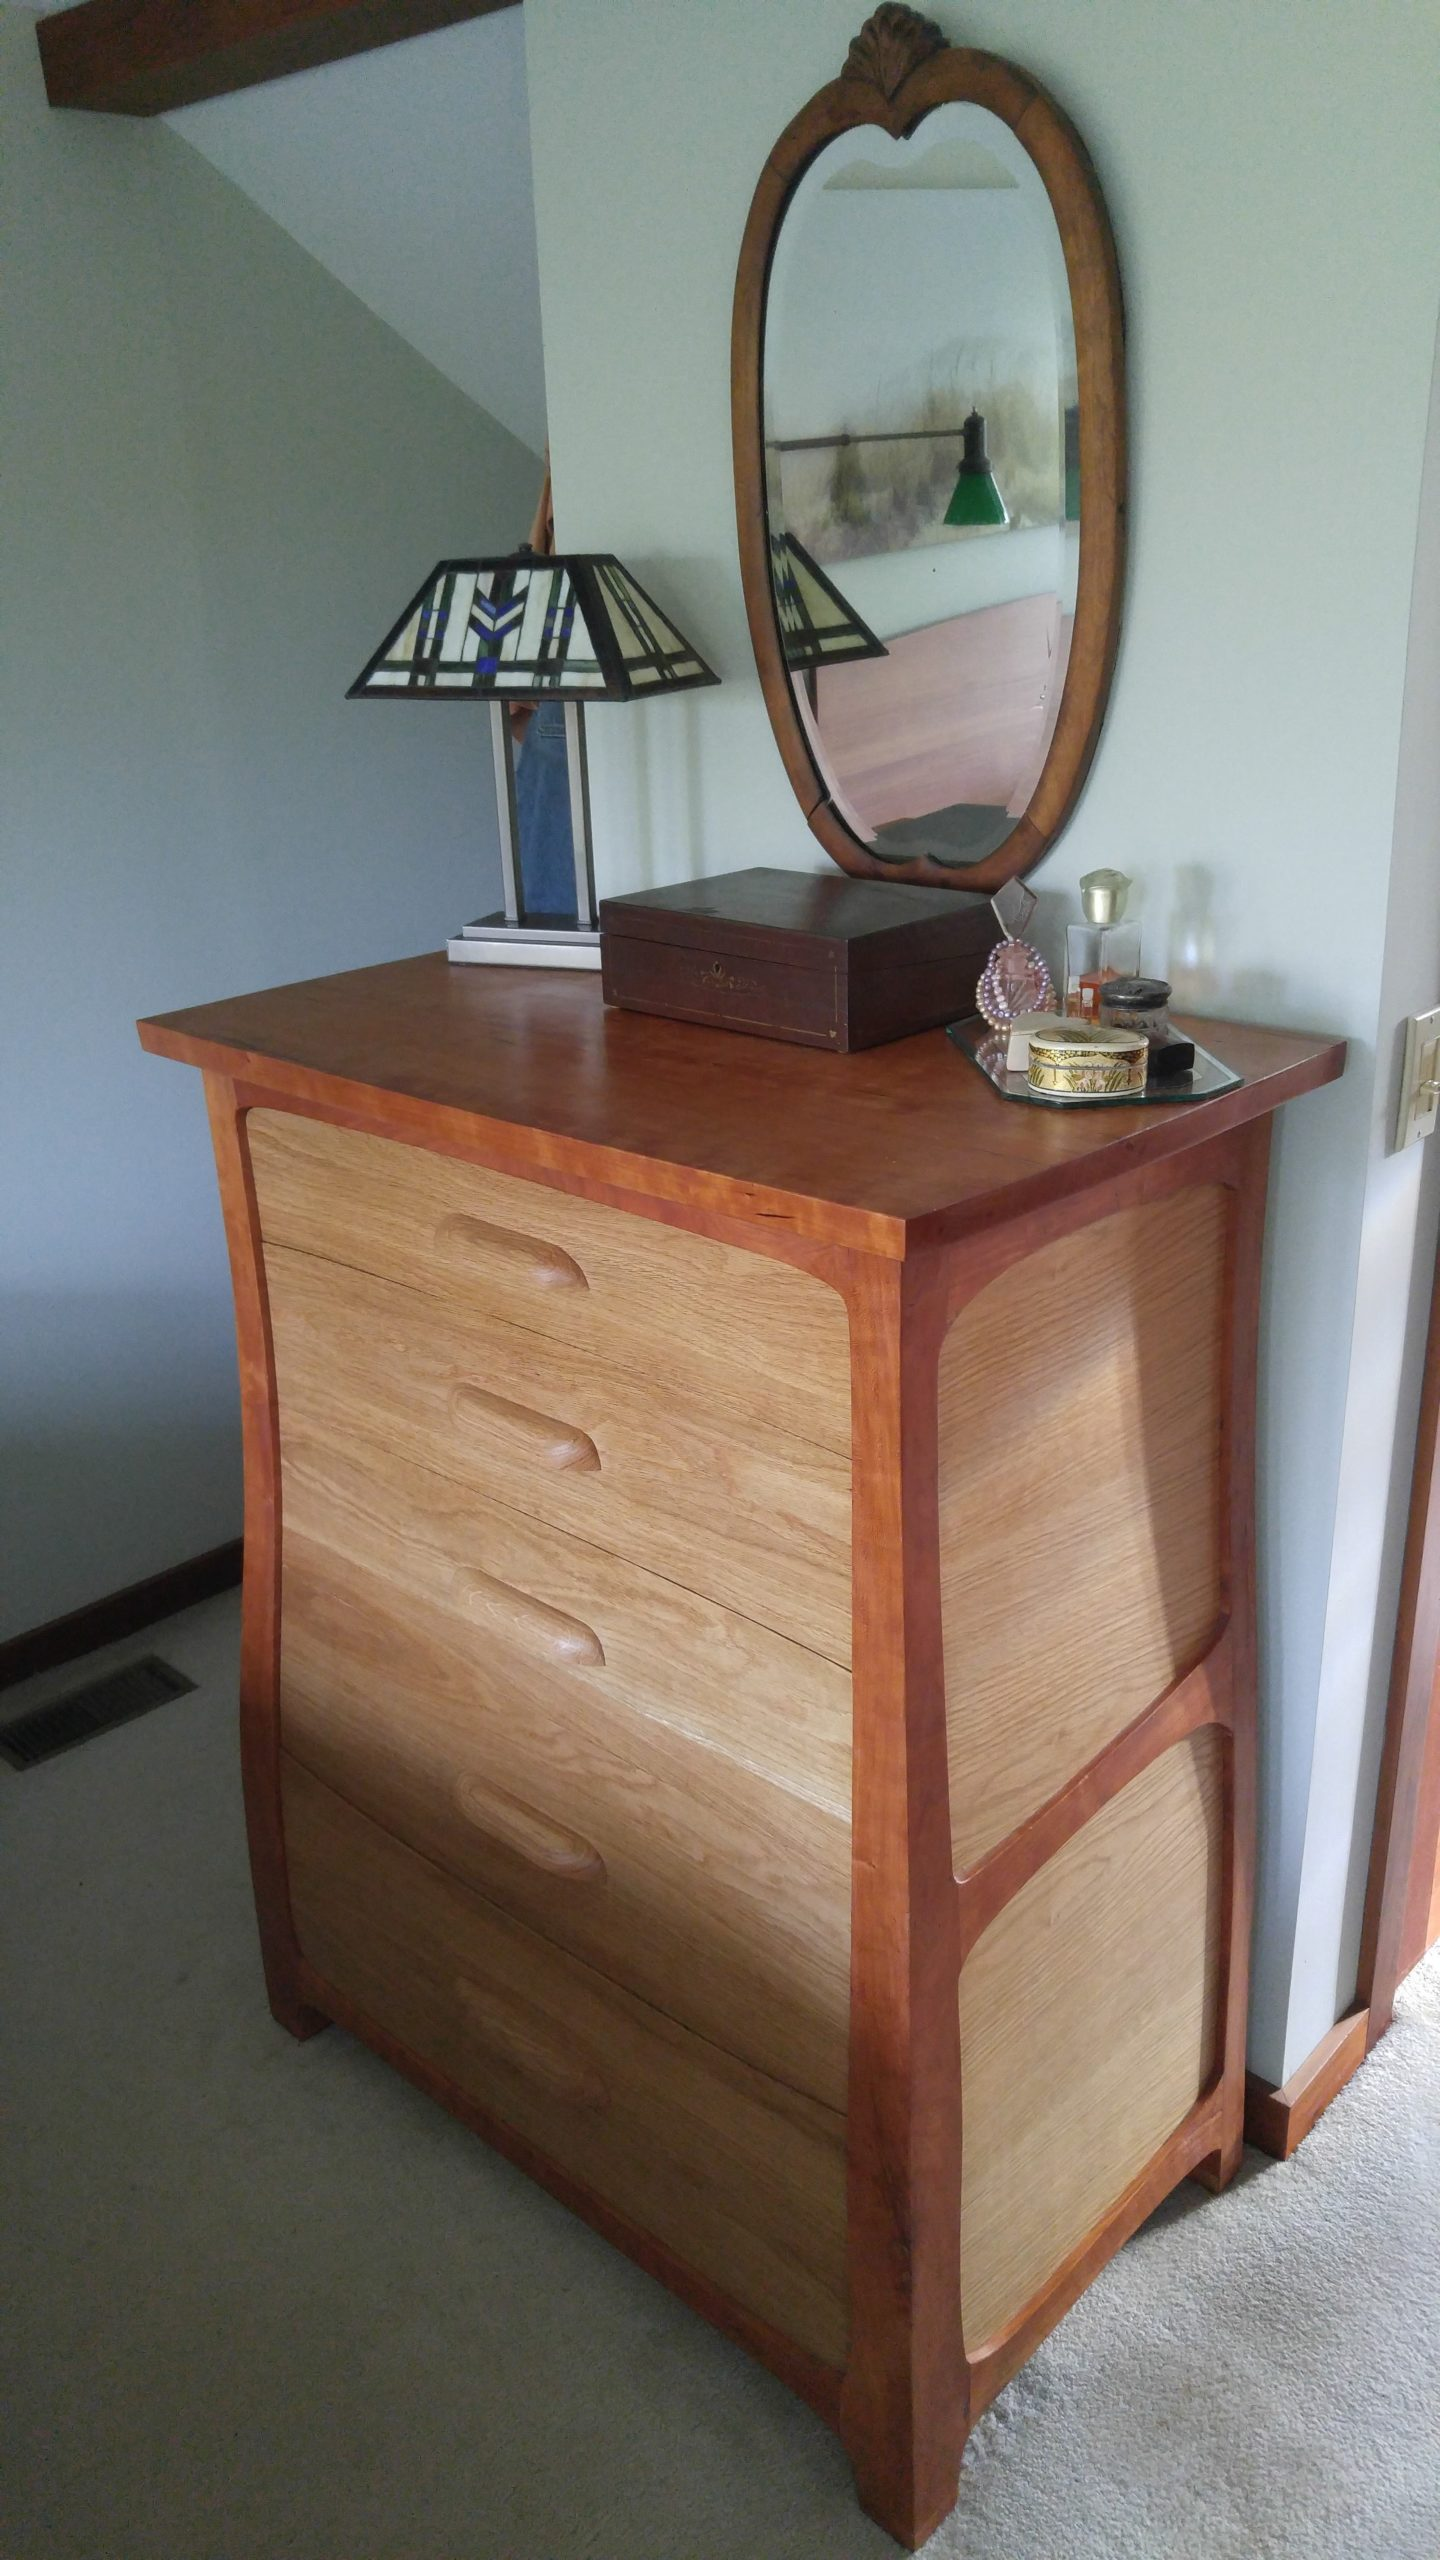 Bruce Milne's chest of drawers.